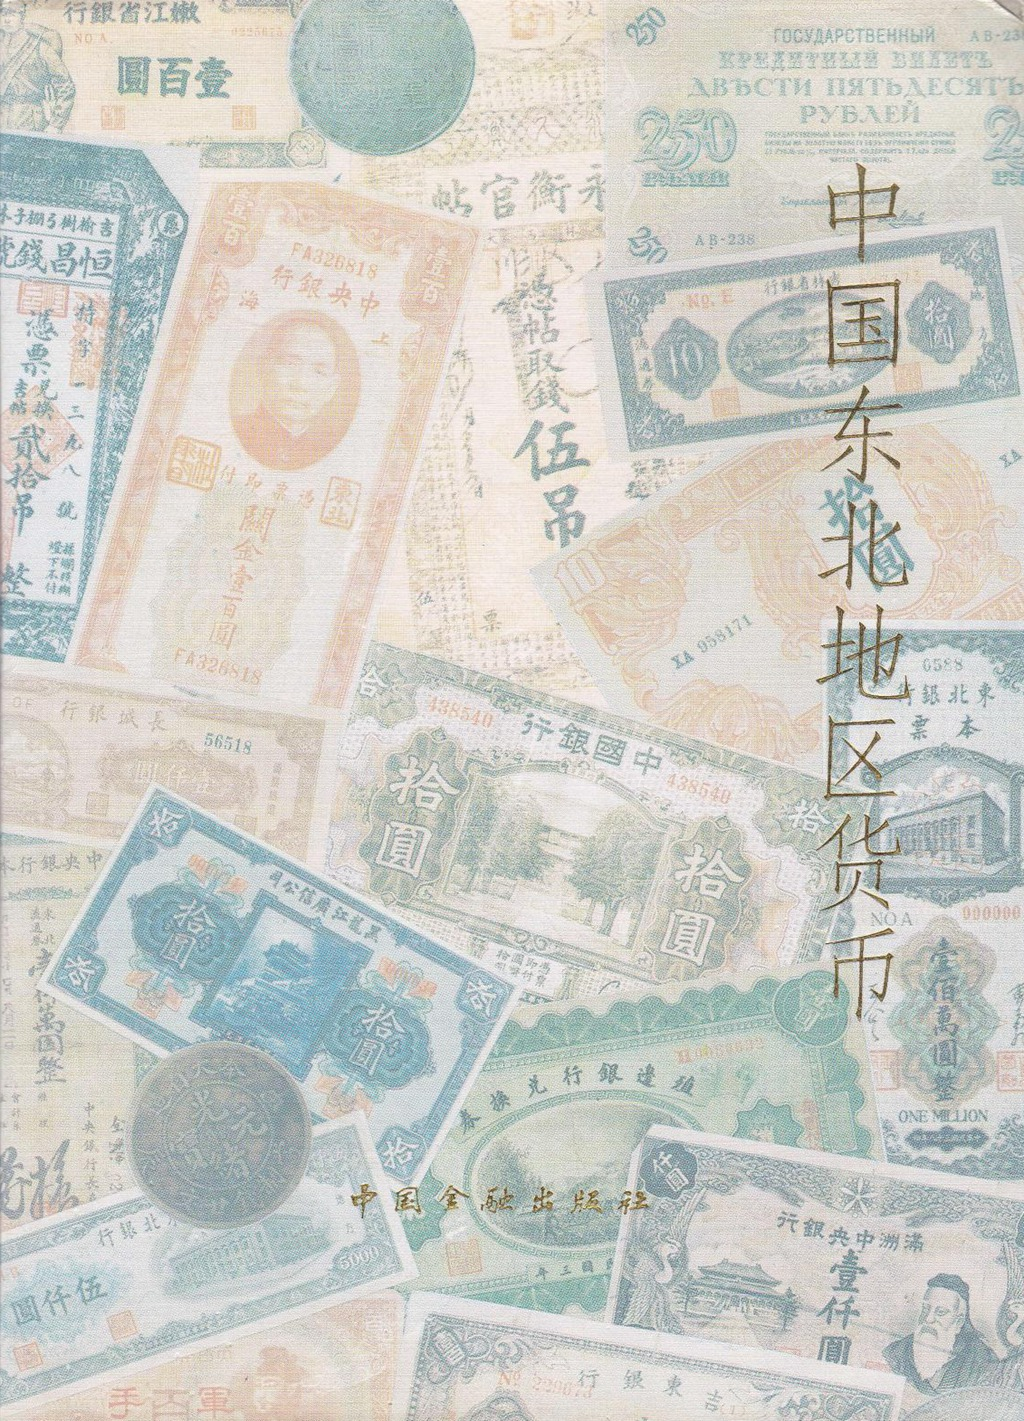 F1653, Catalogue of Currency in North Part of China, 1858-1950